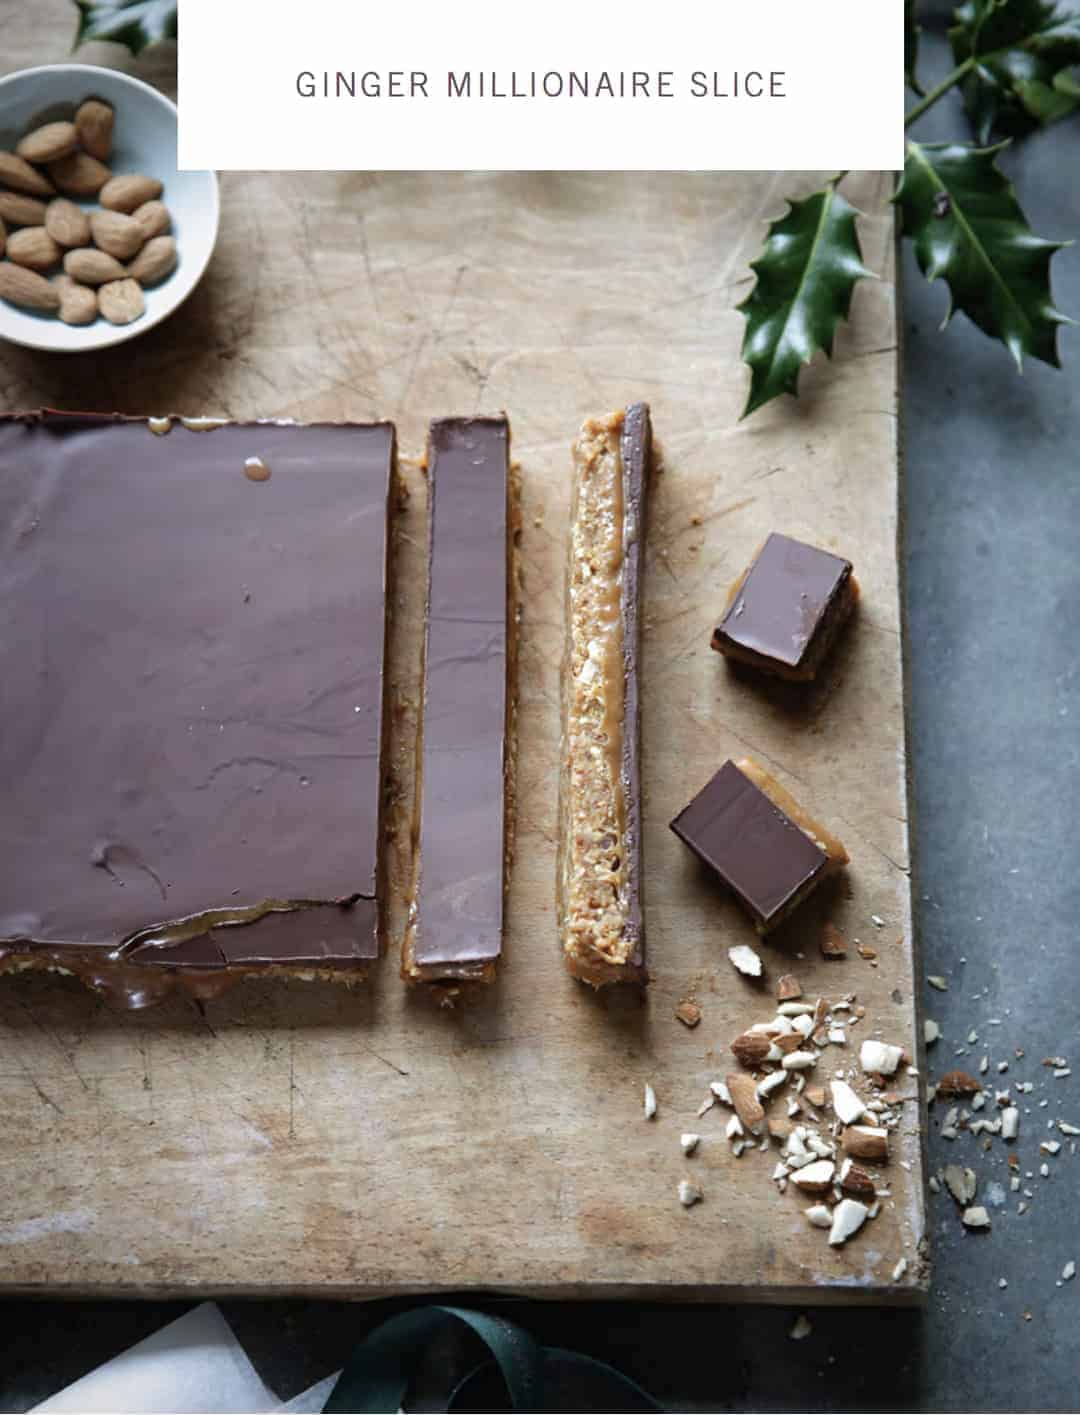 I love this festive ginger millionaire shortbread recipe by Daylesford organic - click through to get the free recipe ebook with some simply beautiful and seasonal festive recipes to take the hassle out of Christmas lunch and festive entertaining